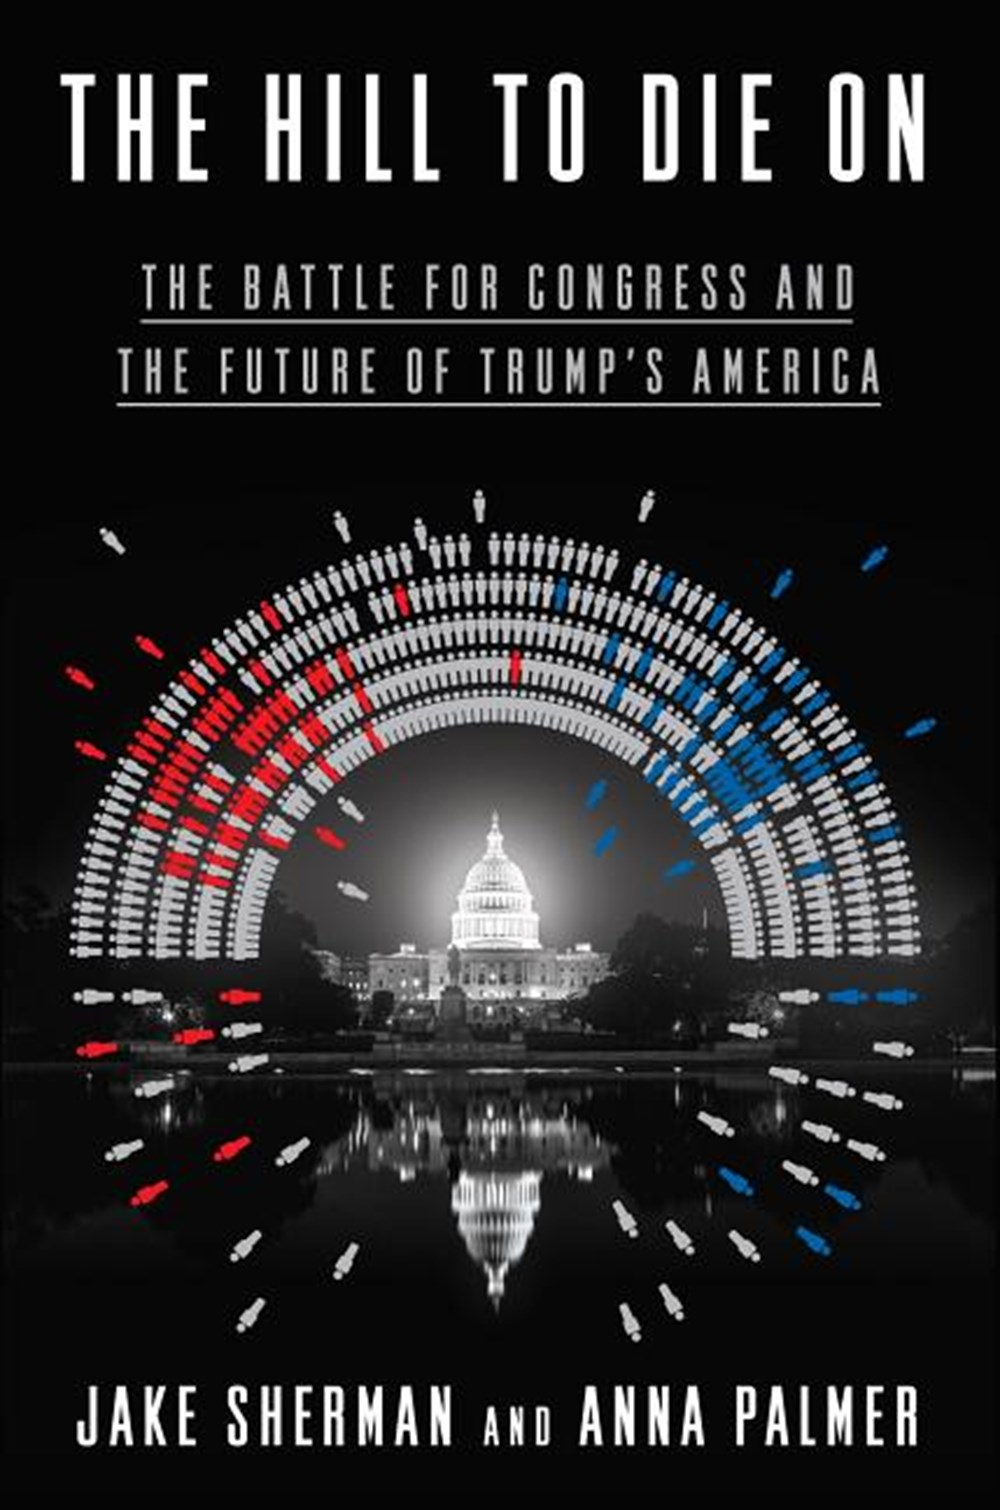 Hill to Die on The Battle for Congress and the Future of Trump's America